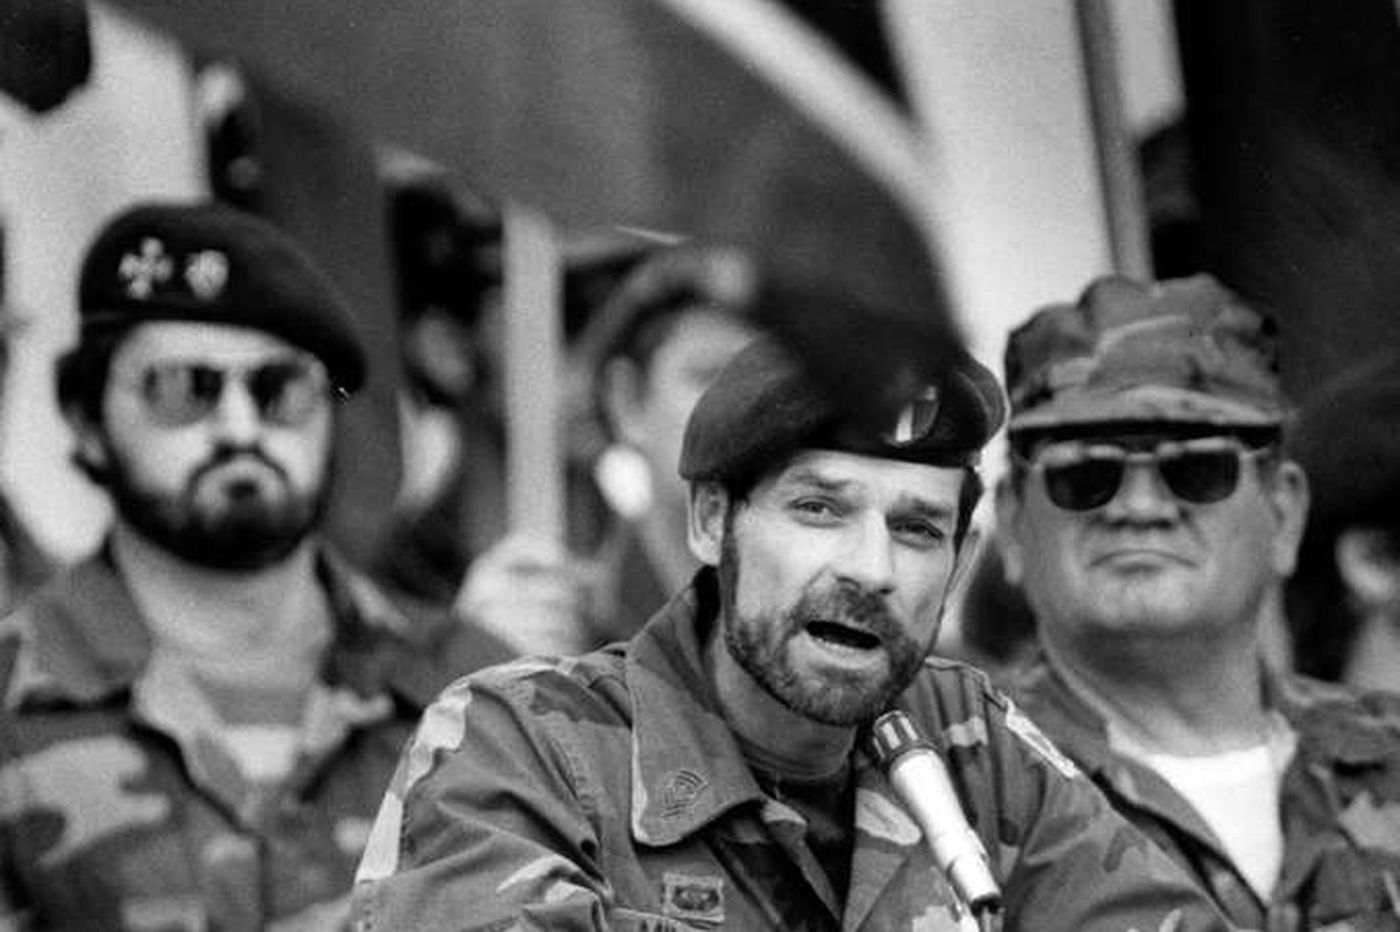 30 years ago, a rising voice of white power